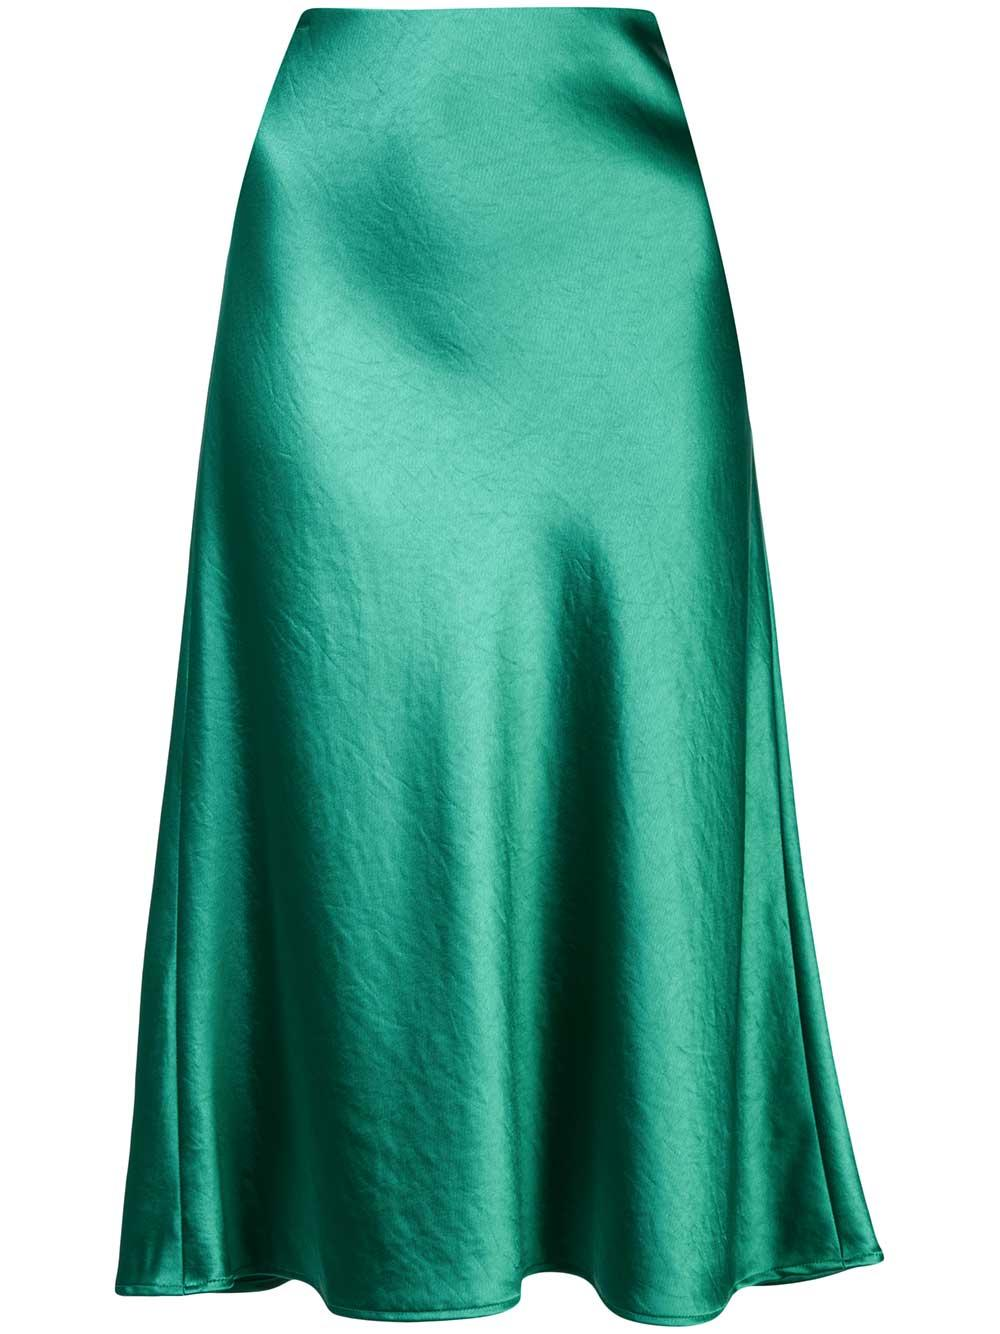 Mila Hammered Satin Bias Slip Skirt